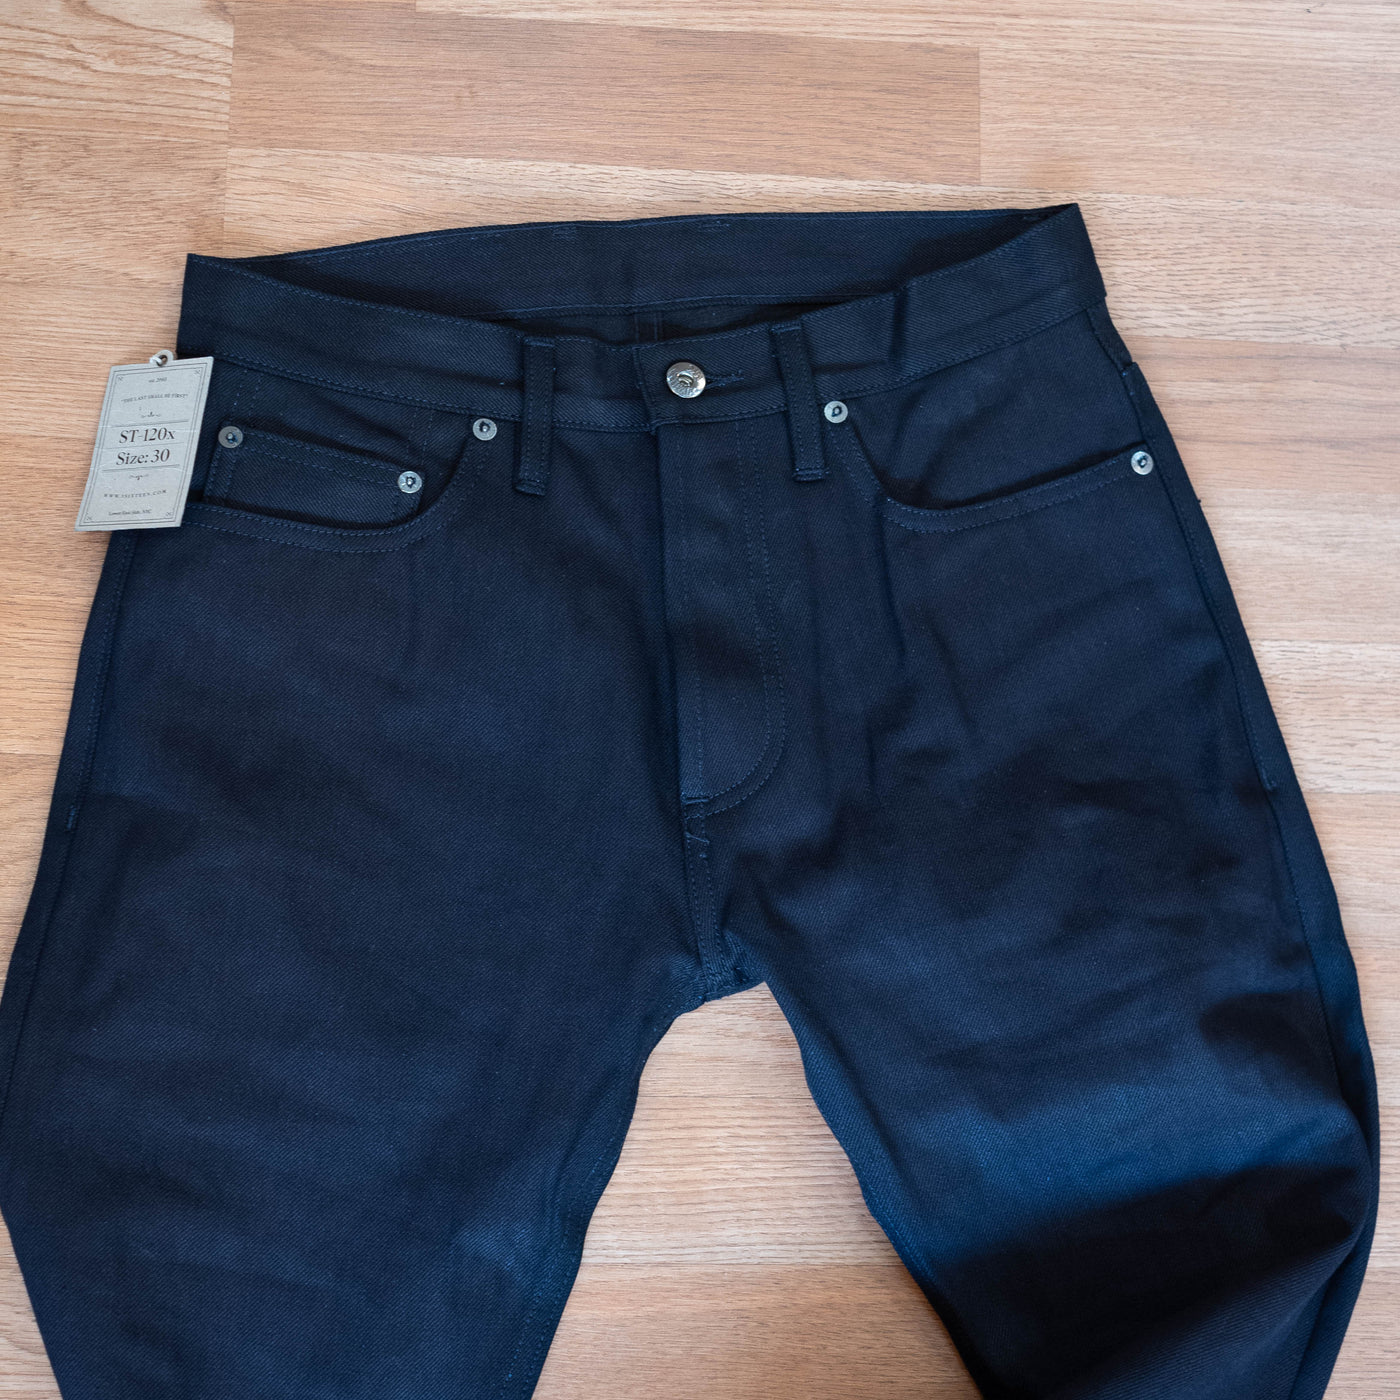 ST-120x - Slim Tapered Shadow Selvedge